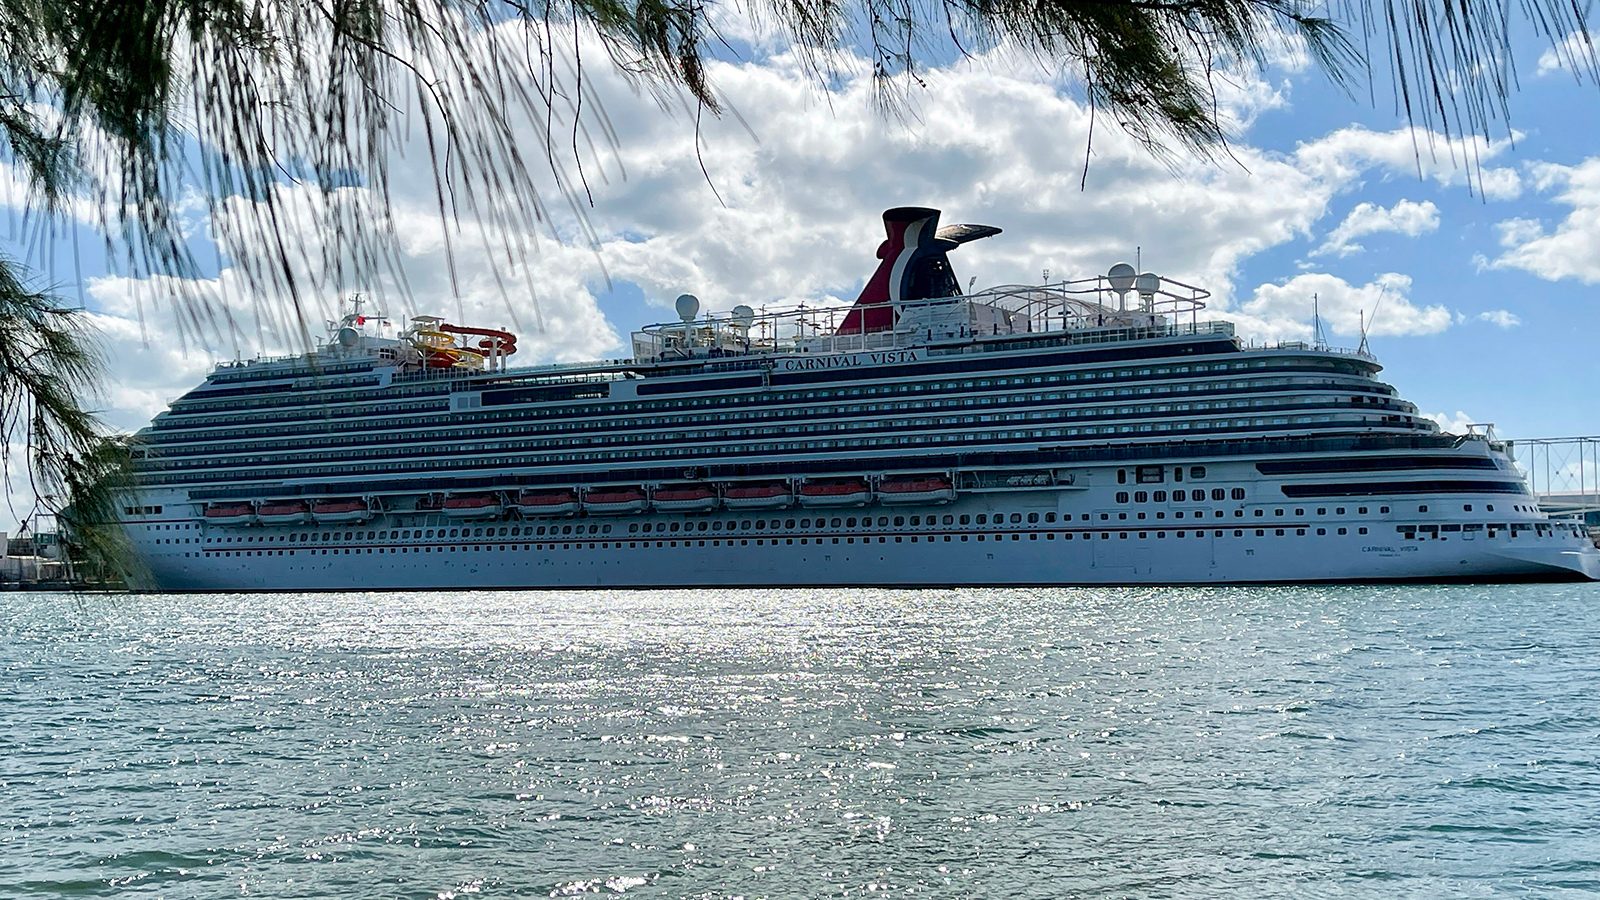 """The cruise ship """"Carnival Vista"""" part of the Carnival Cruise Line, is seen moored at a quay in the port of Miami, Florida, on December 23, 2020."""